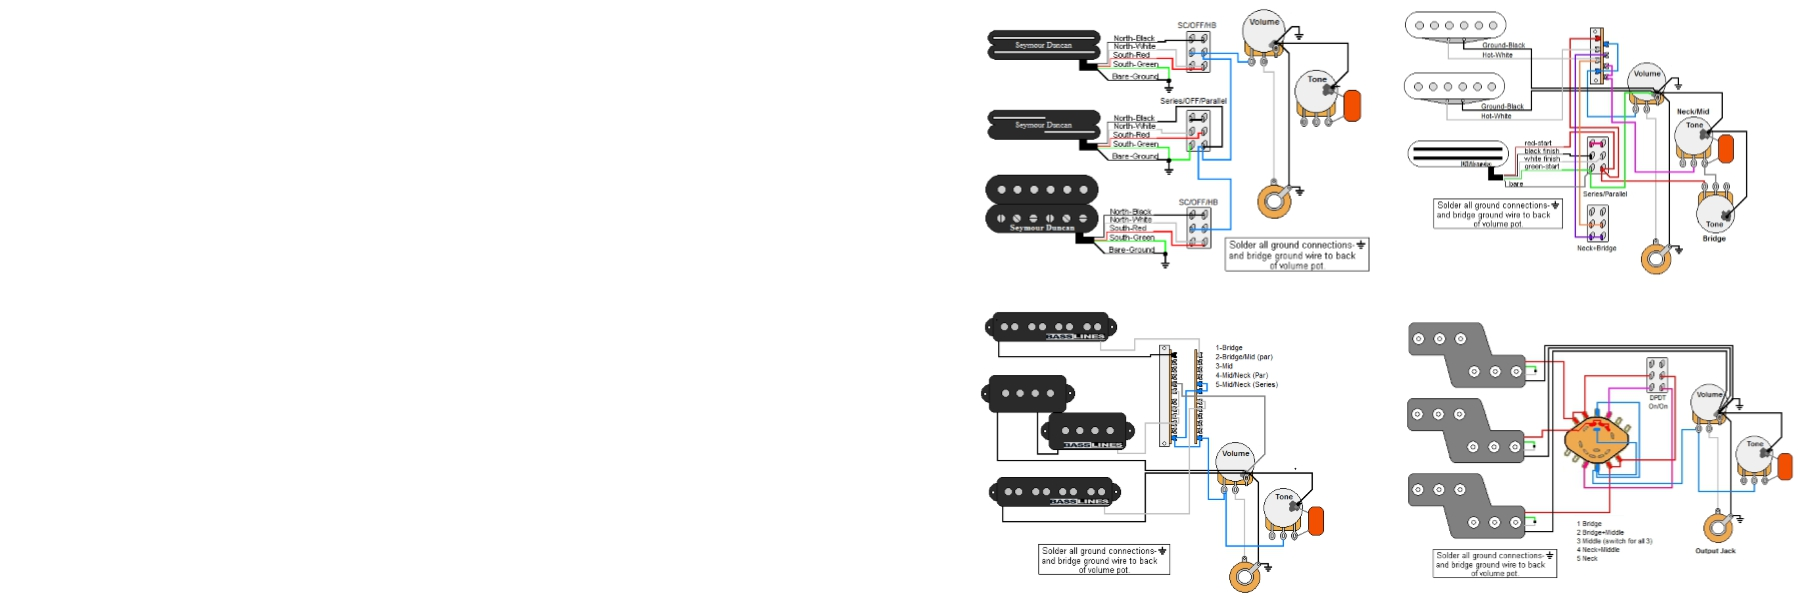 Tremendous Jackson Soloist Wiring Wiring Diagram Wiring Digital Resources Indicompassionincorg